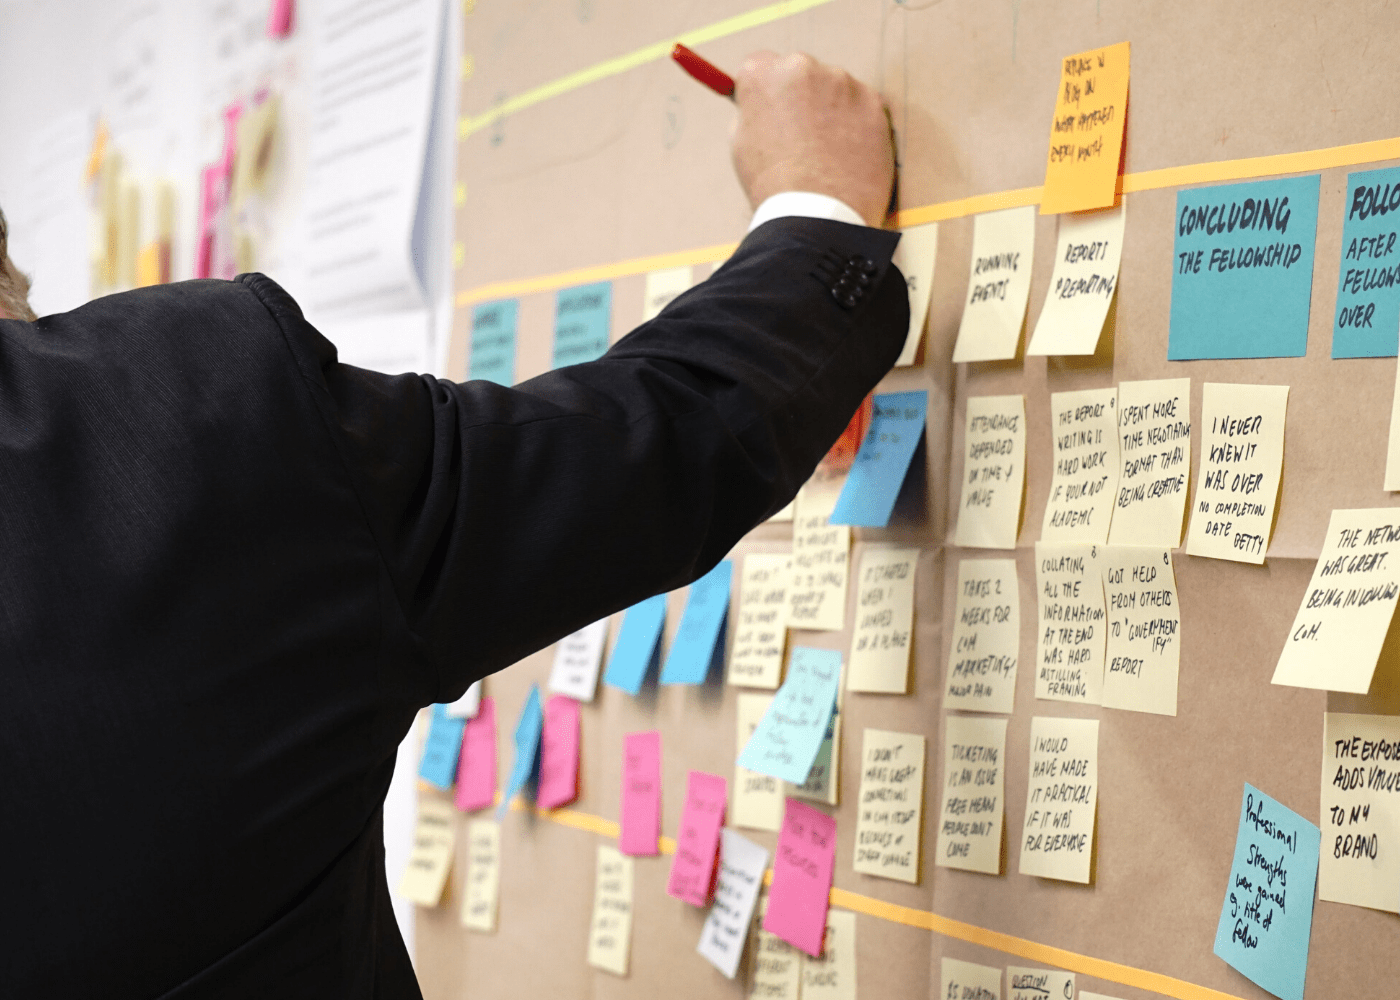 With productivity apps, you don't need numerous sticky notes.